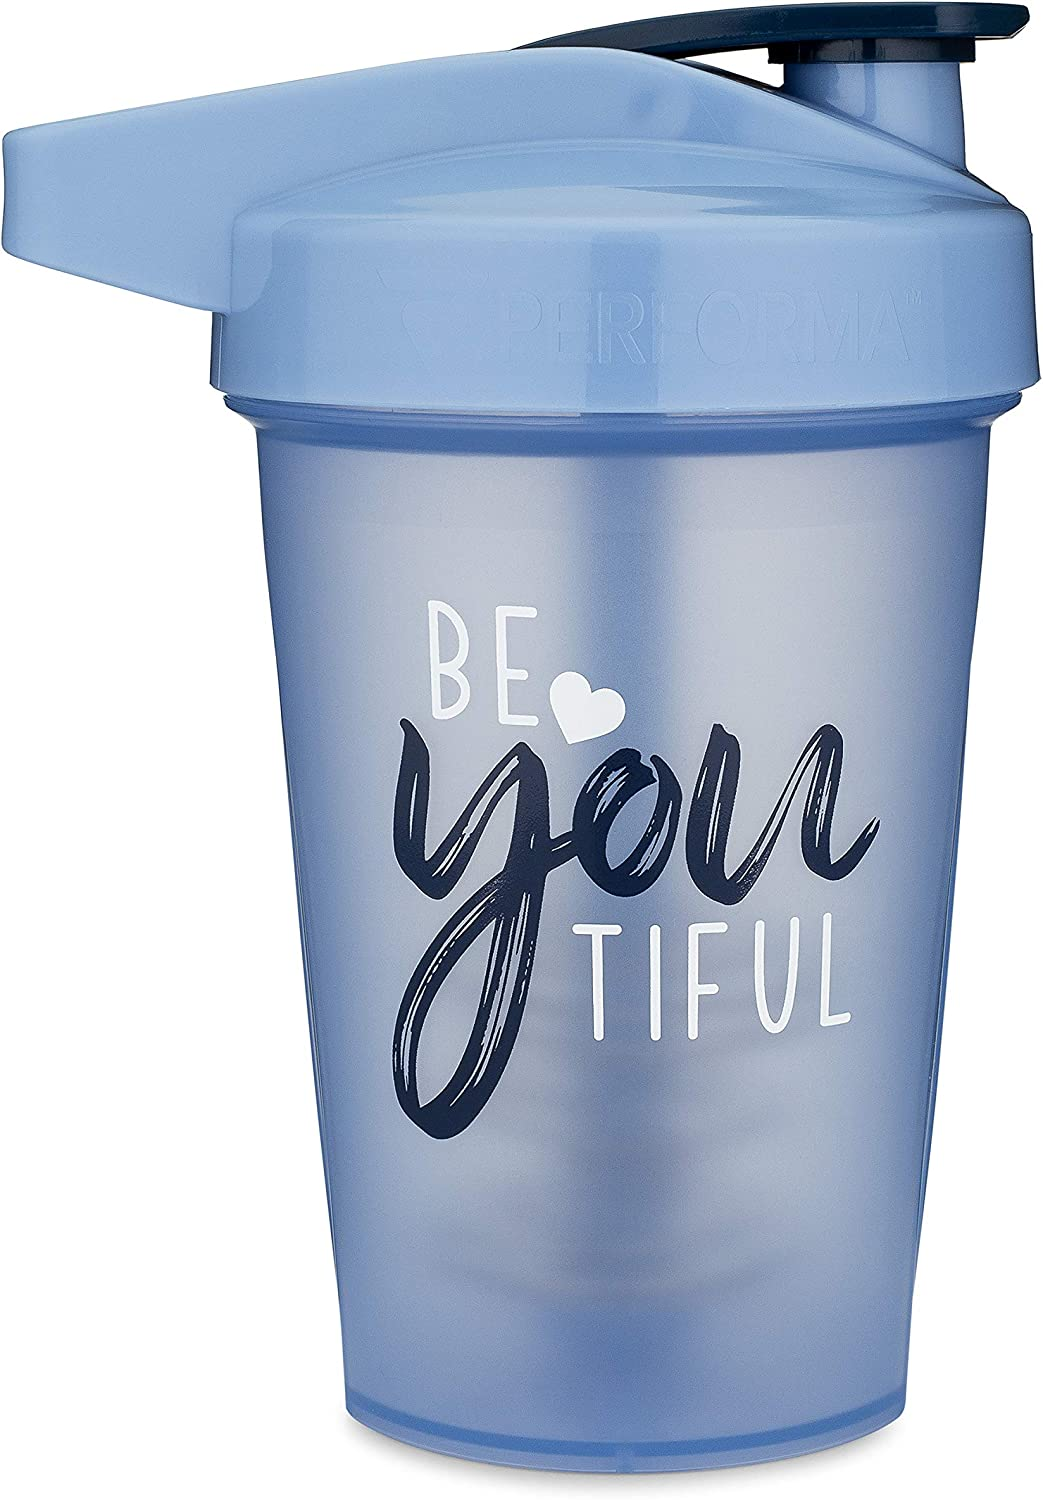 20-Ounce Shaker Bottle with Action-Rod Mixer | Shaker Cups with Motivational Quotes | Protein Shaker Bottle is BPA Free and Dishwasher Safe | Beyoutiful - Light Blue